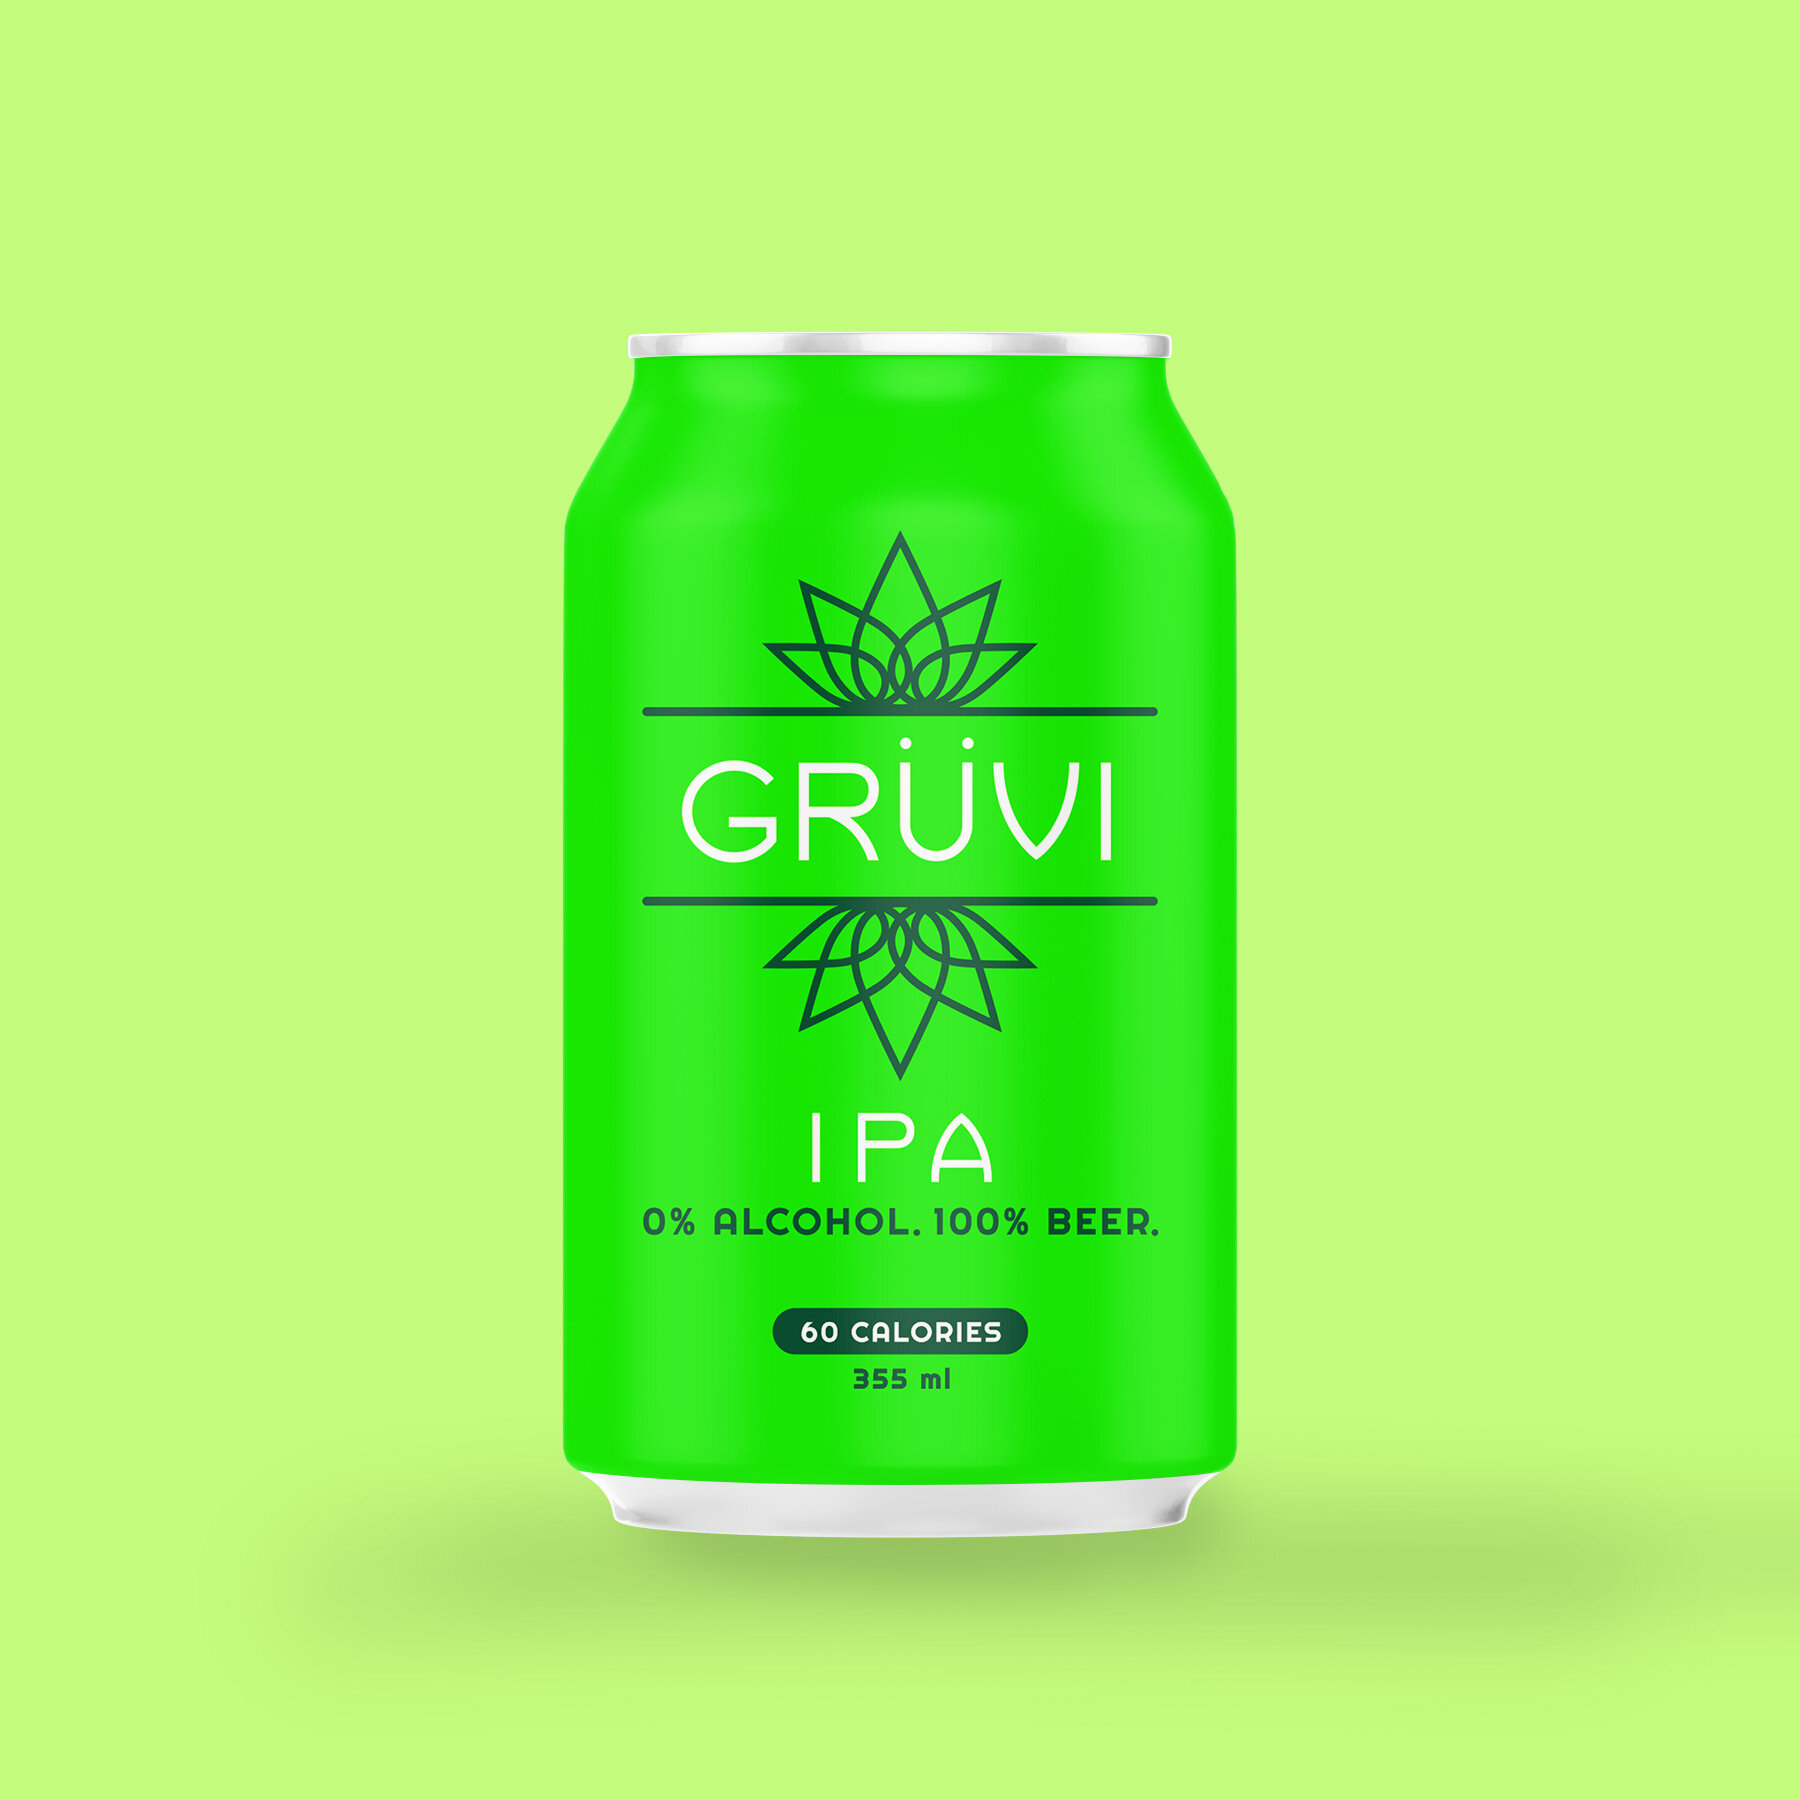 Gruvi IPA   Our most hop-packed and vivid beer. Packed with Humulene (naturally from hops) to enable relaxation and suppress hunger. Gruvi IPA is undeniably hoppy, and wonderfully flavorful. It's bitter, hoppy, and rich in flavour.